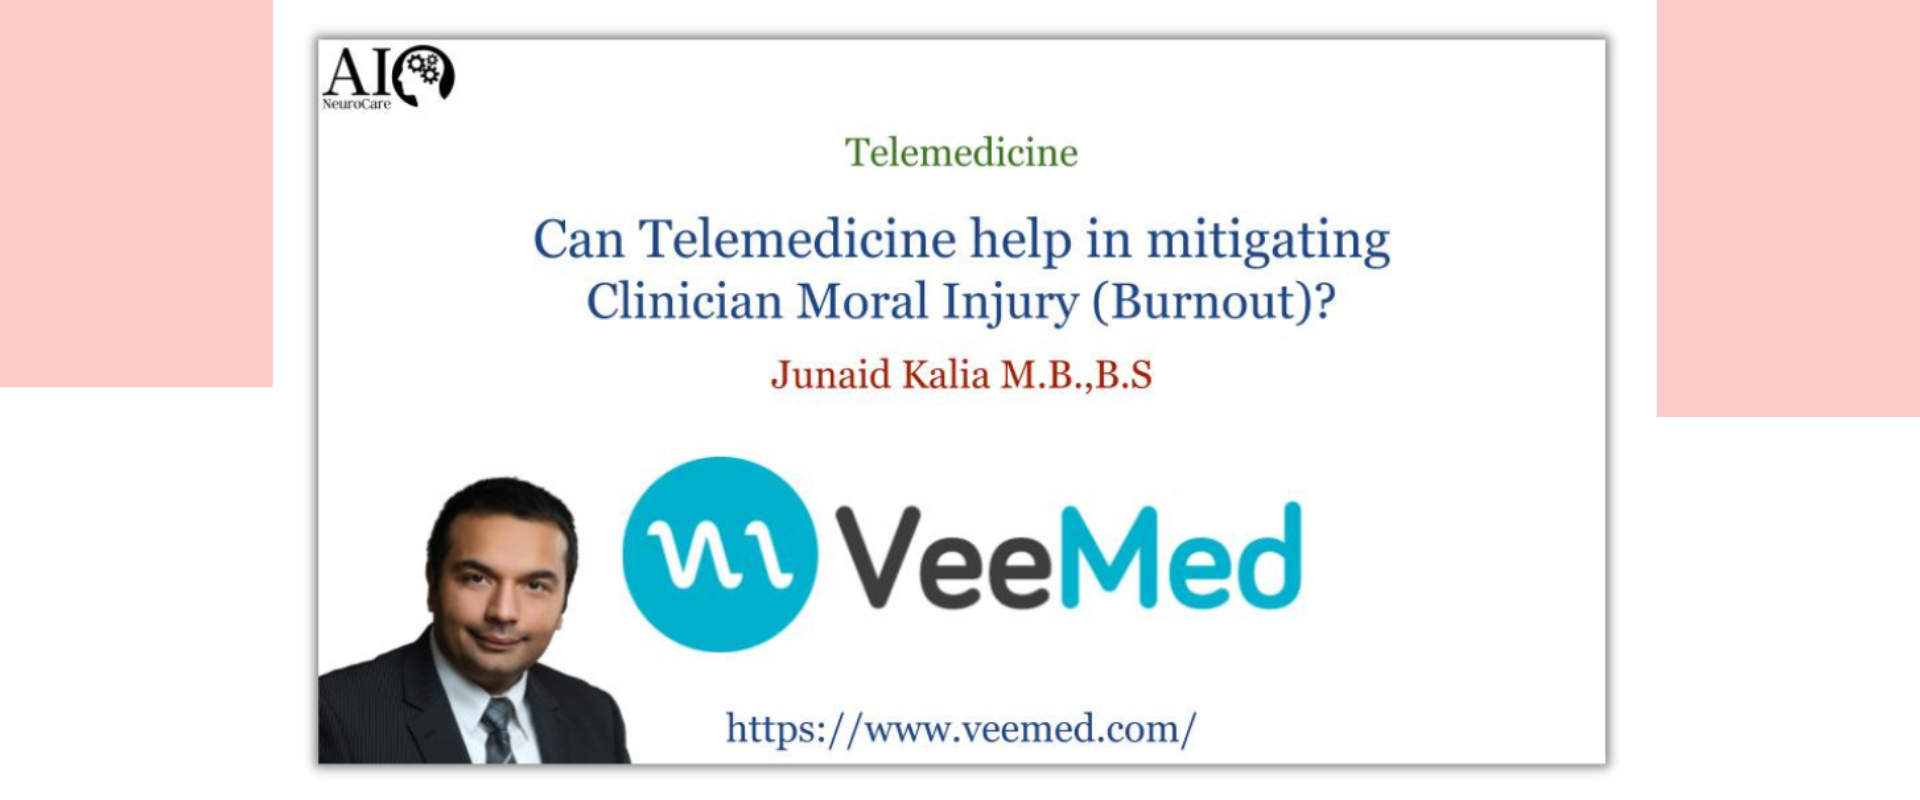 Can Telemedicine help in mitigating Clinician Moral Injury/Burnout?